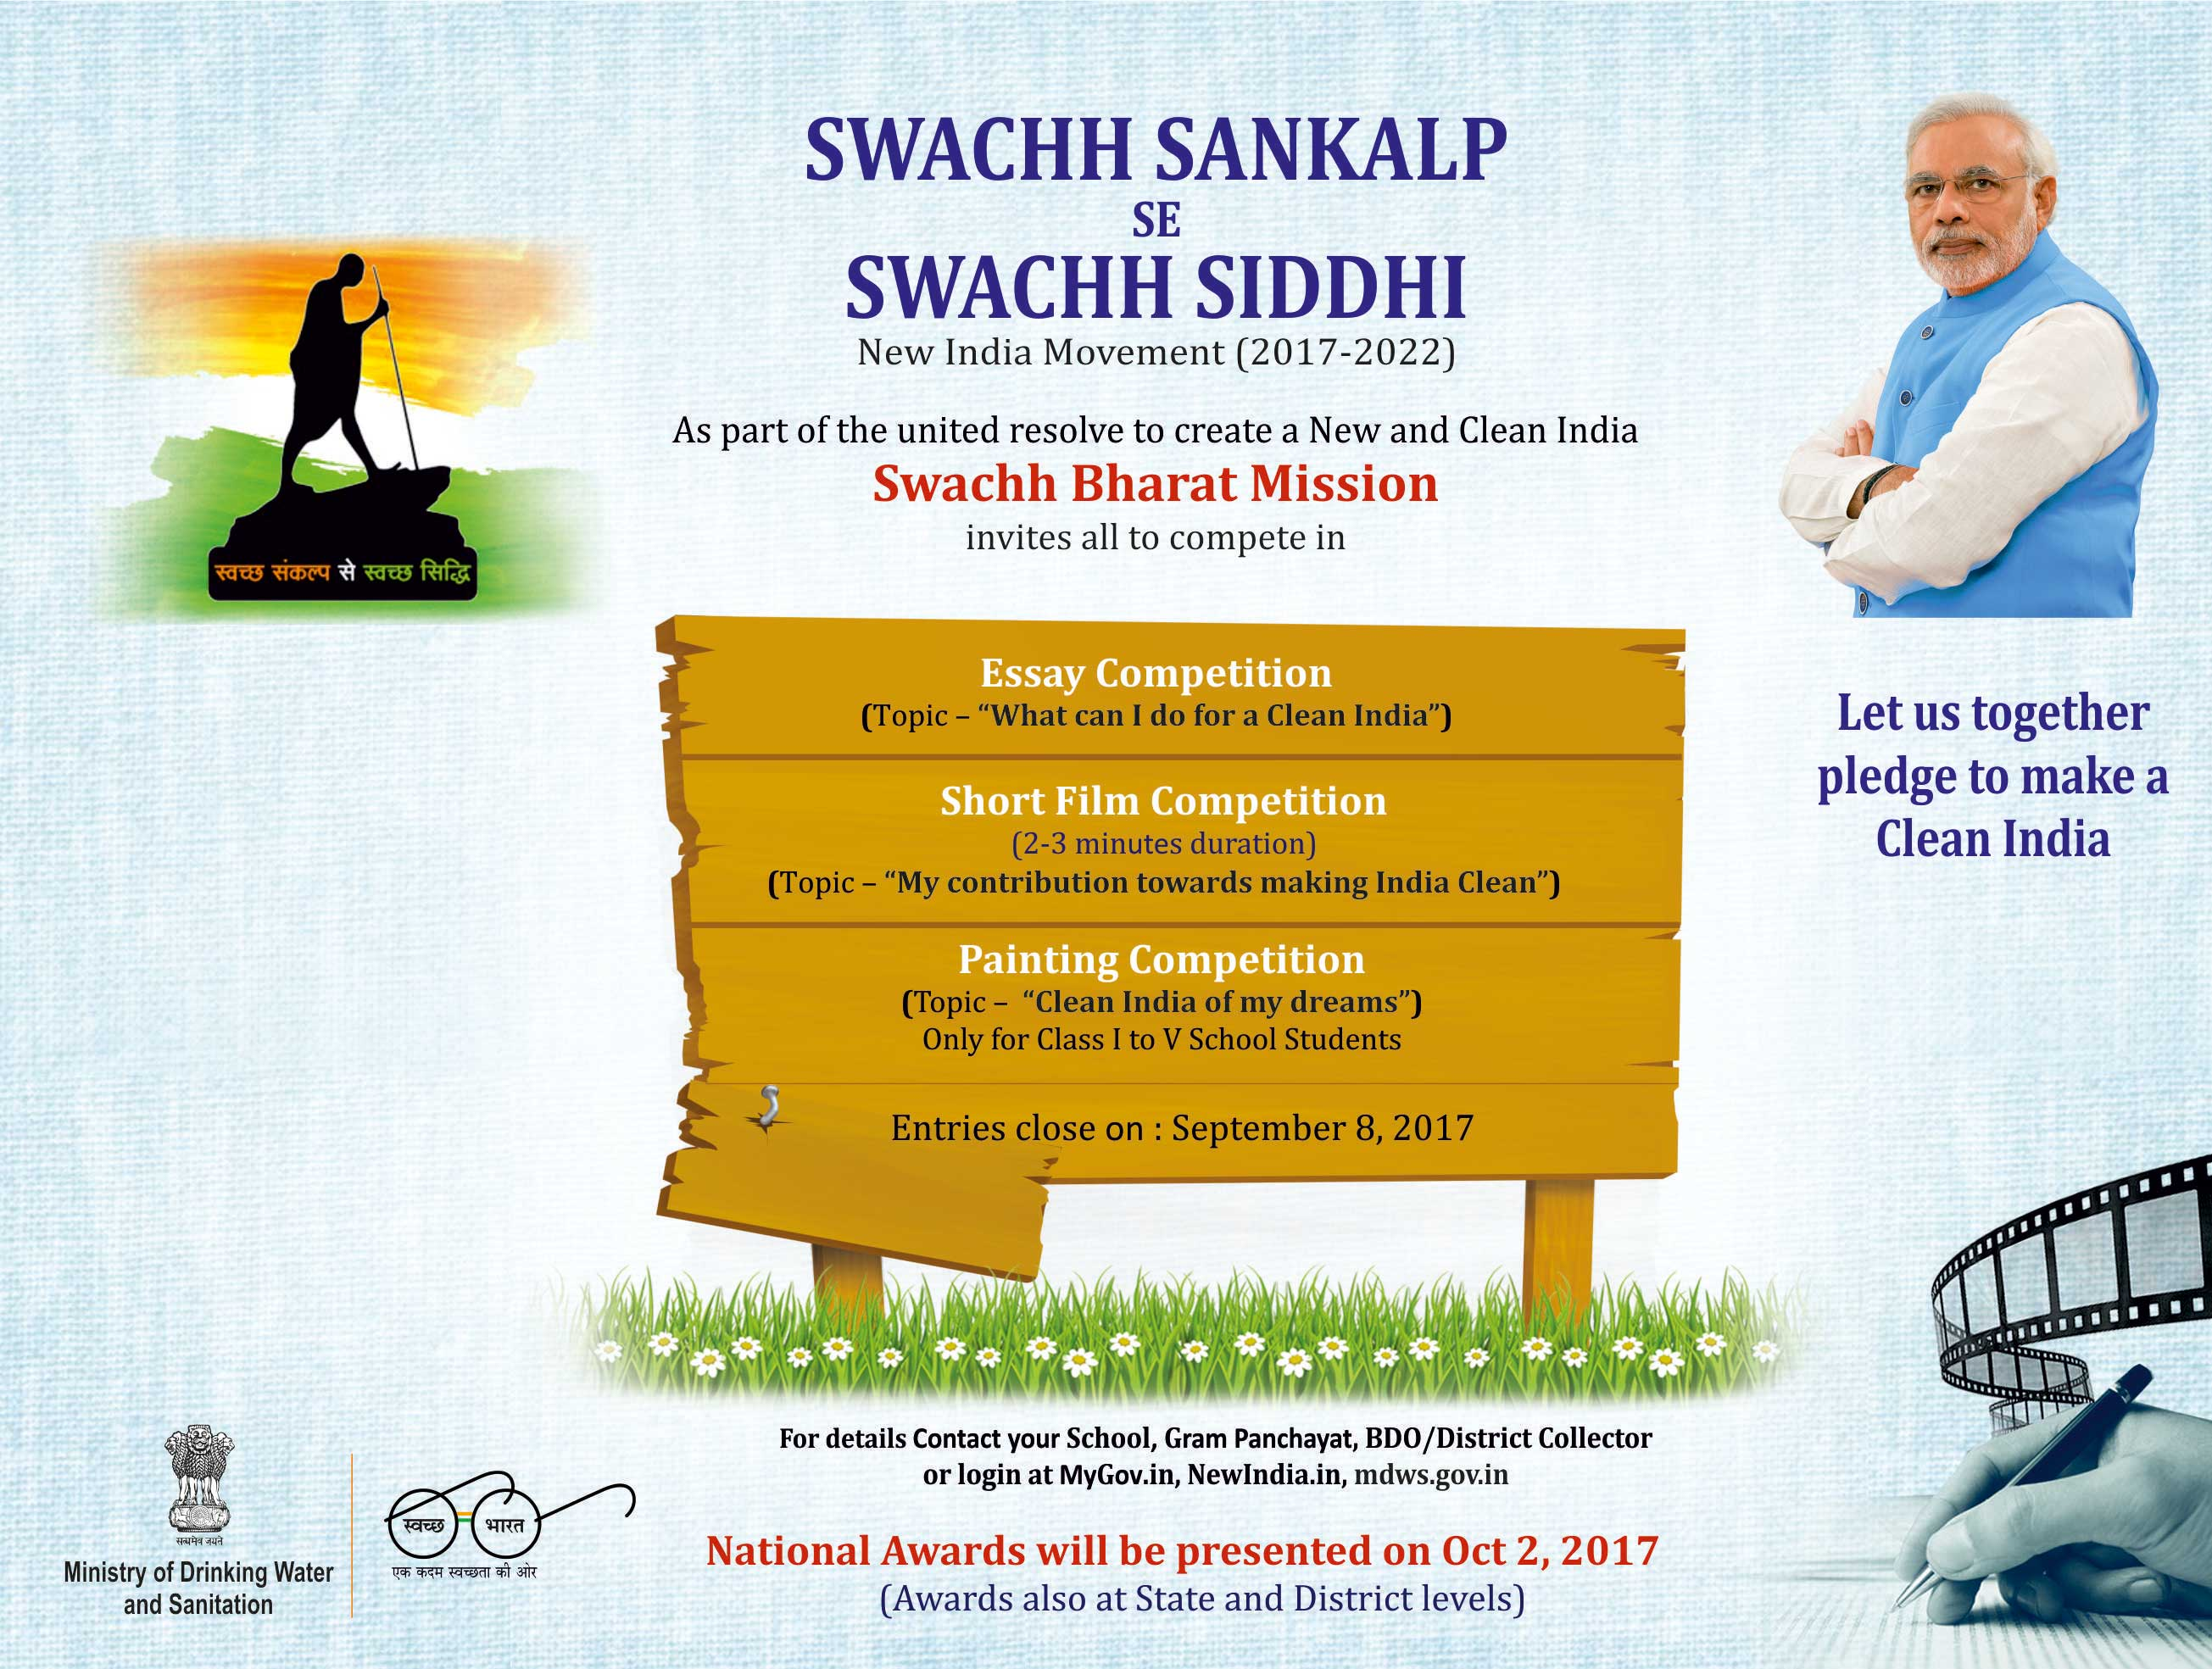 MDWS organizes ODF Collectors' Conference on Swachh Bharat in LBSNAA